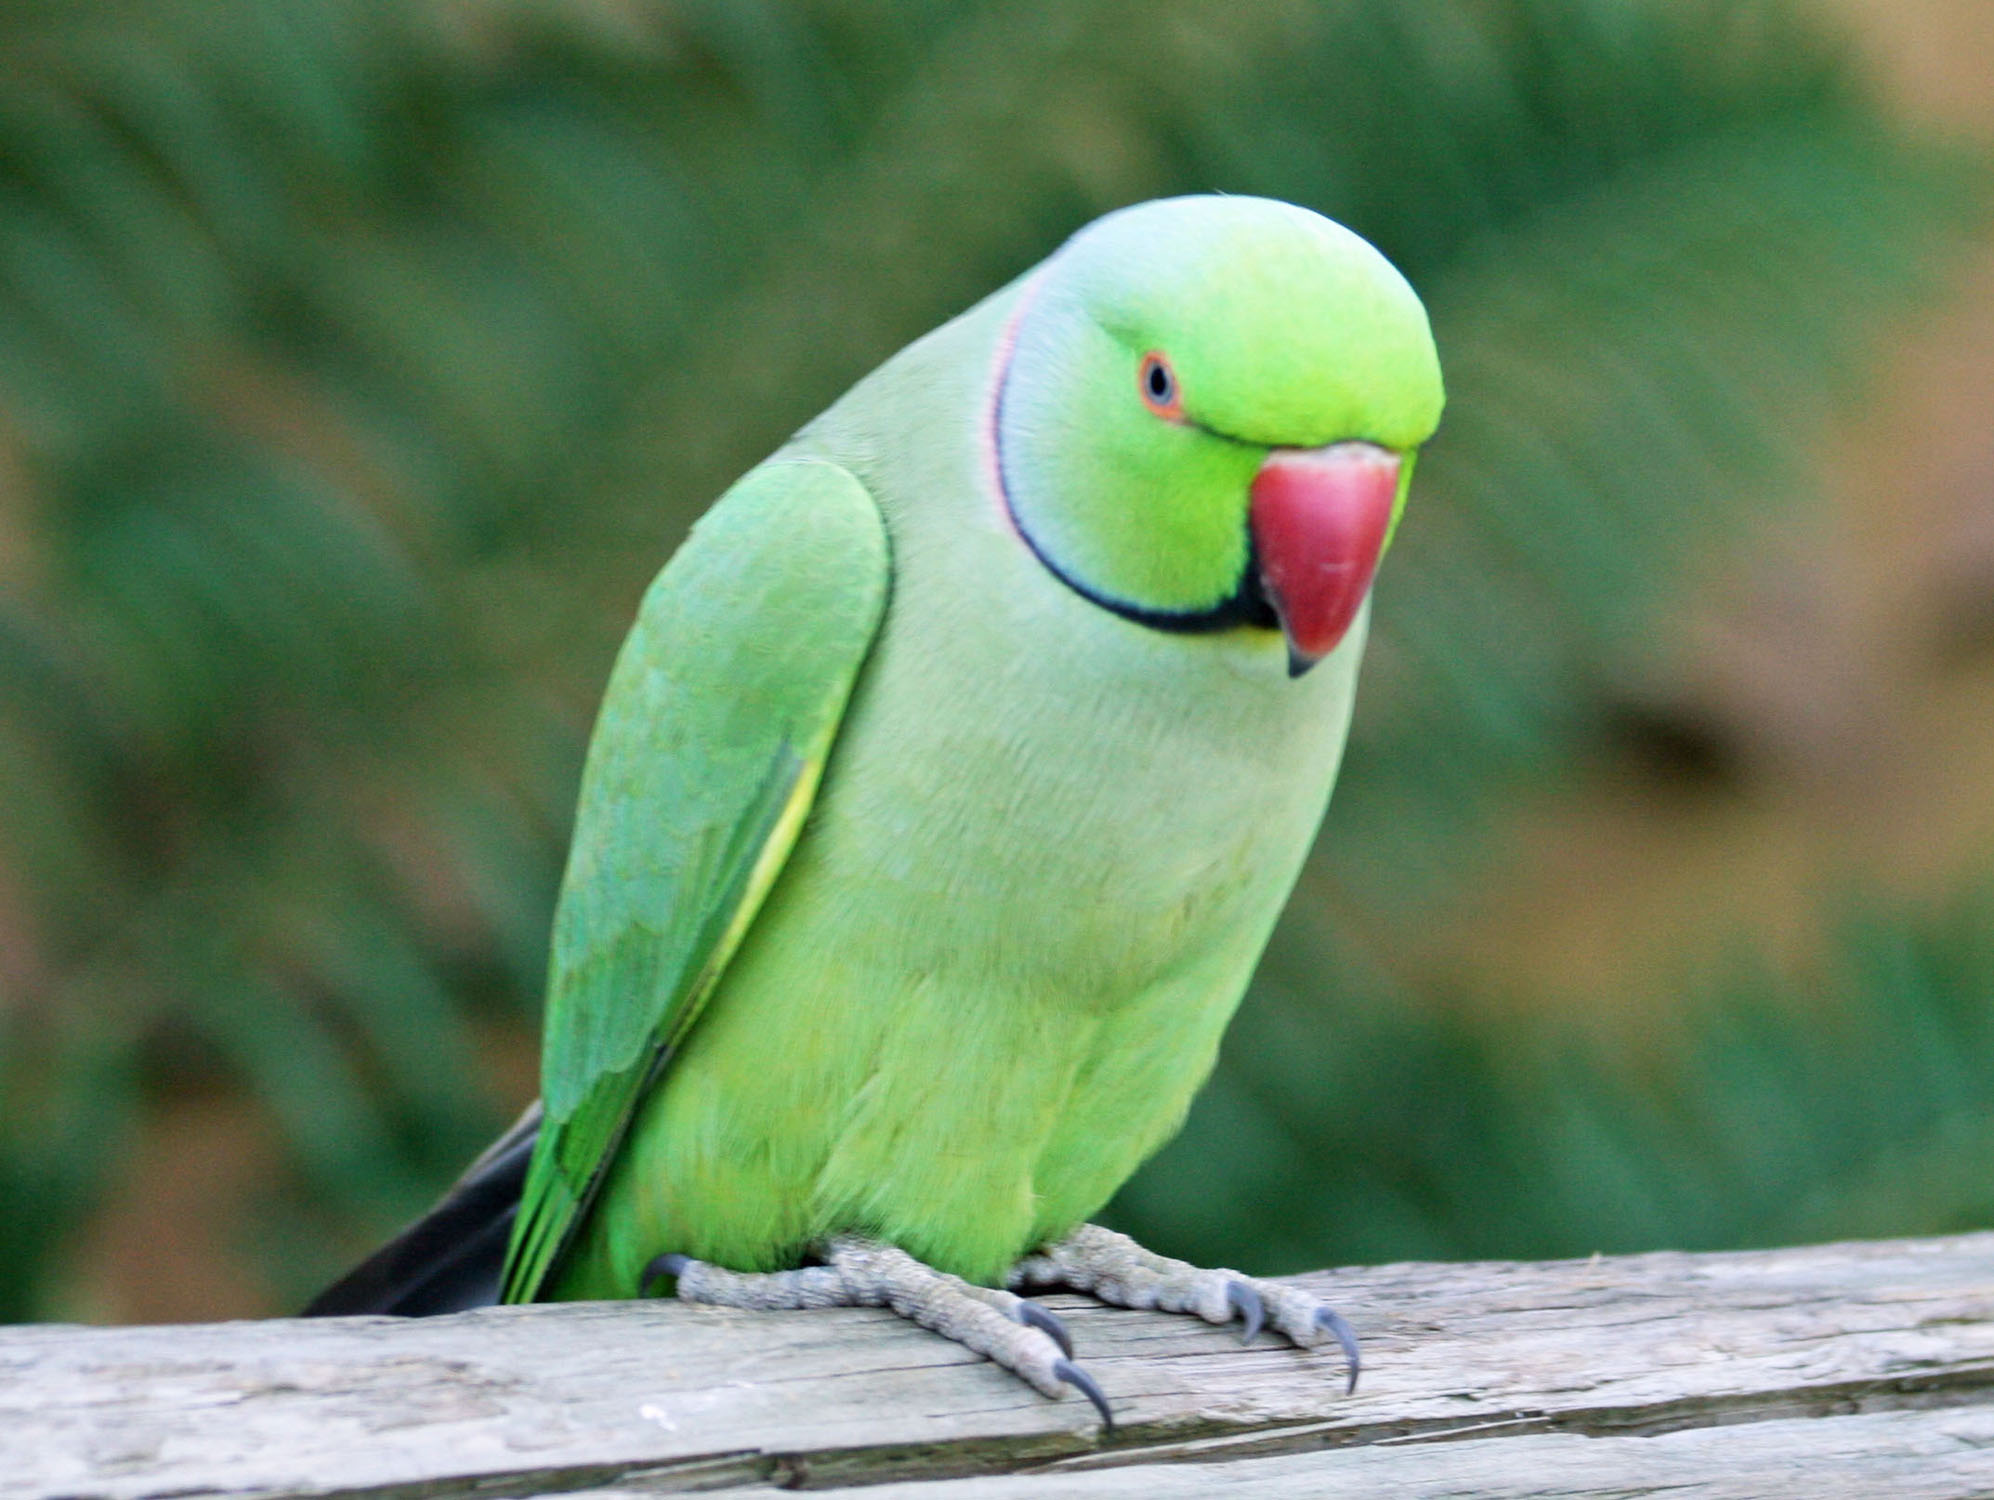 Parrot Article Essay an Short Word